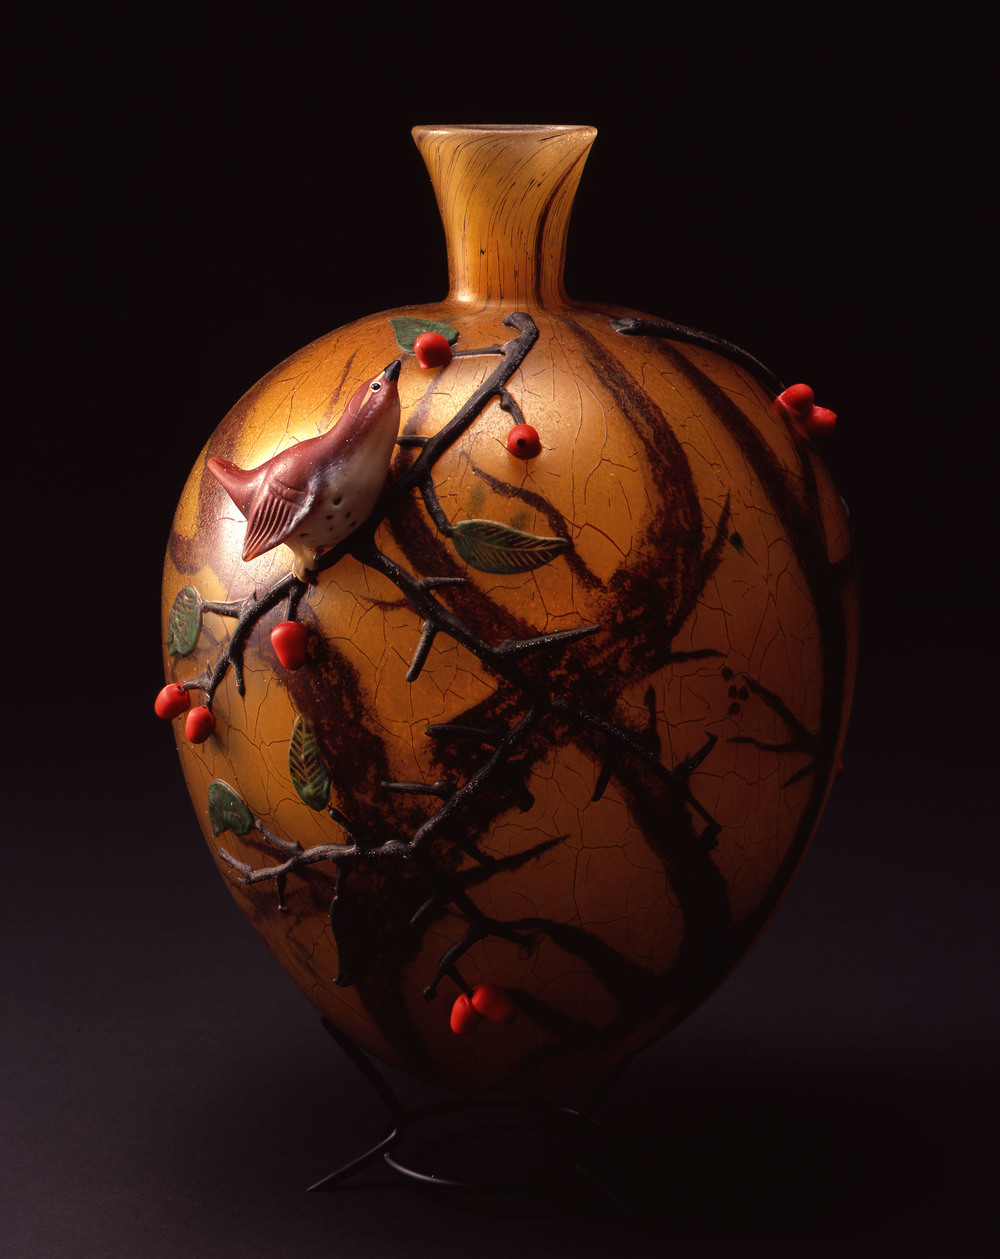 William Morris,  Vase with Wren and Berries    (2004, glass, 10 x 8 3/8 x 7 1/2 inches), WM.49